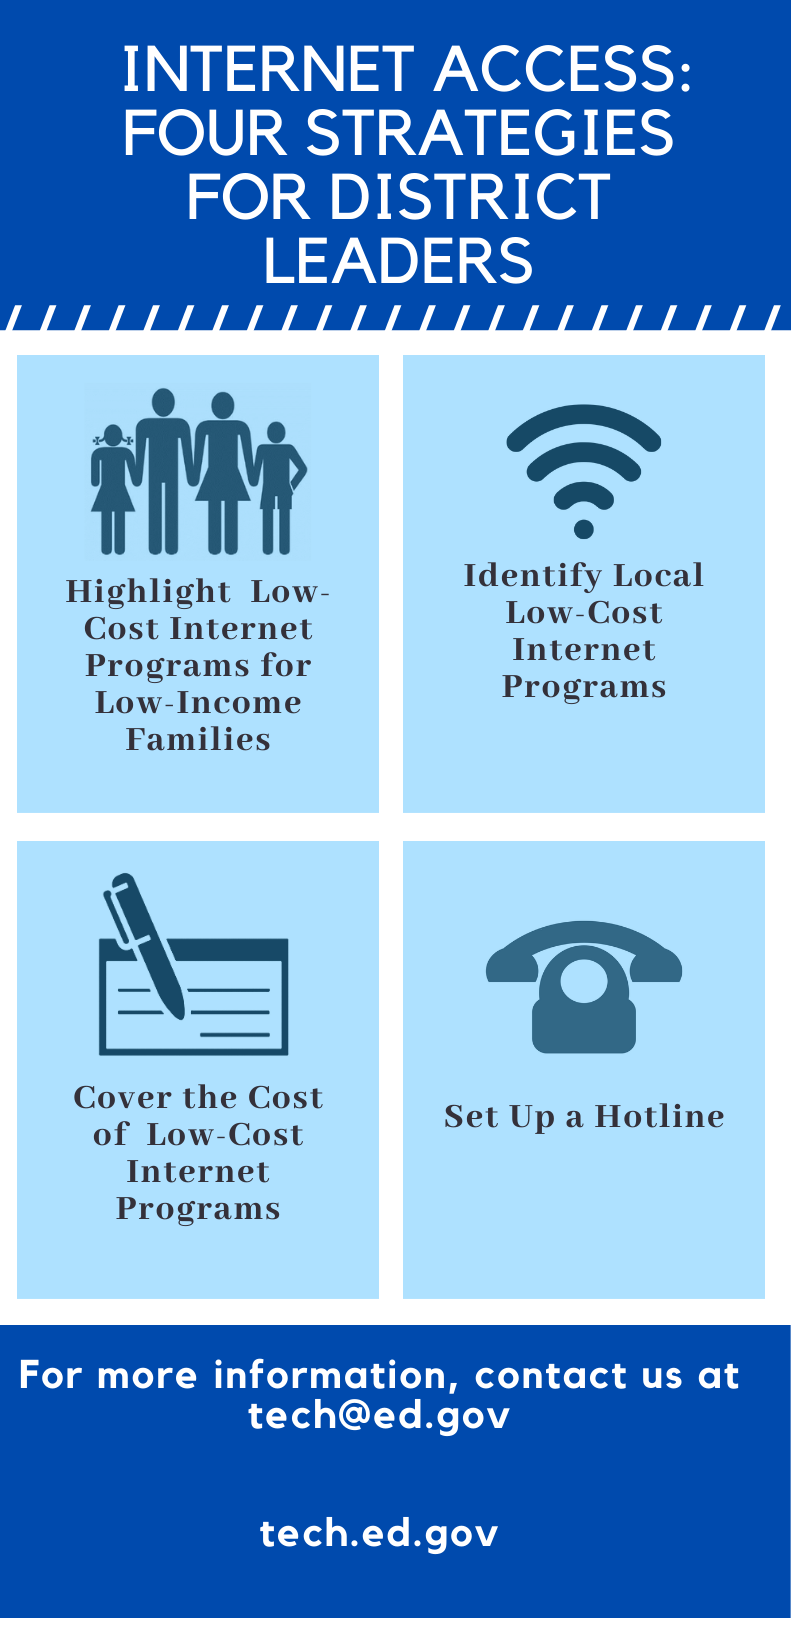 Infographic highlighting four internet access strategies for district leaders.